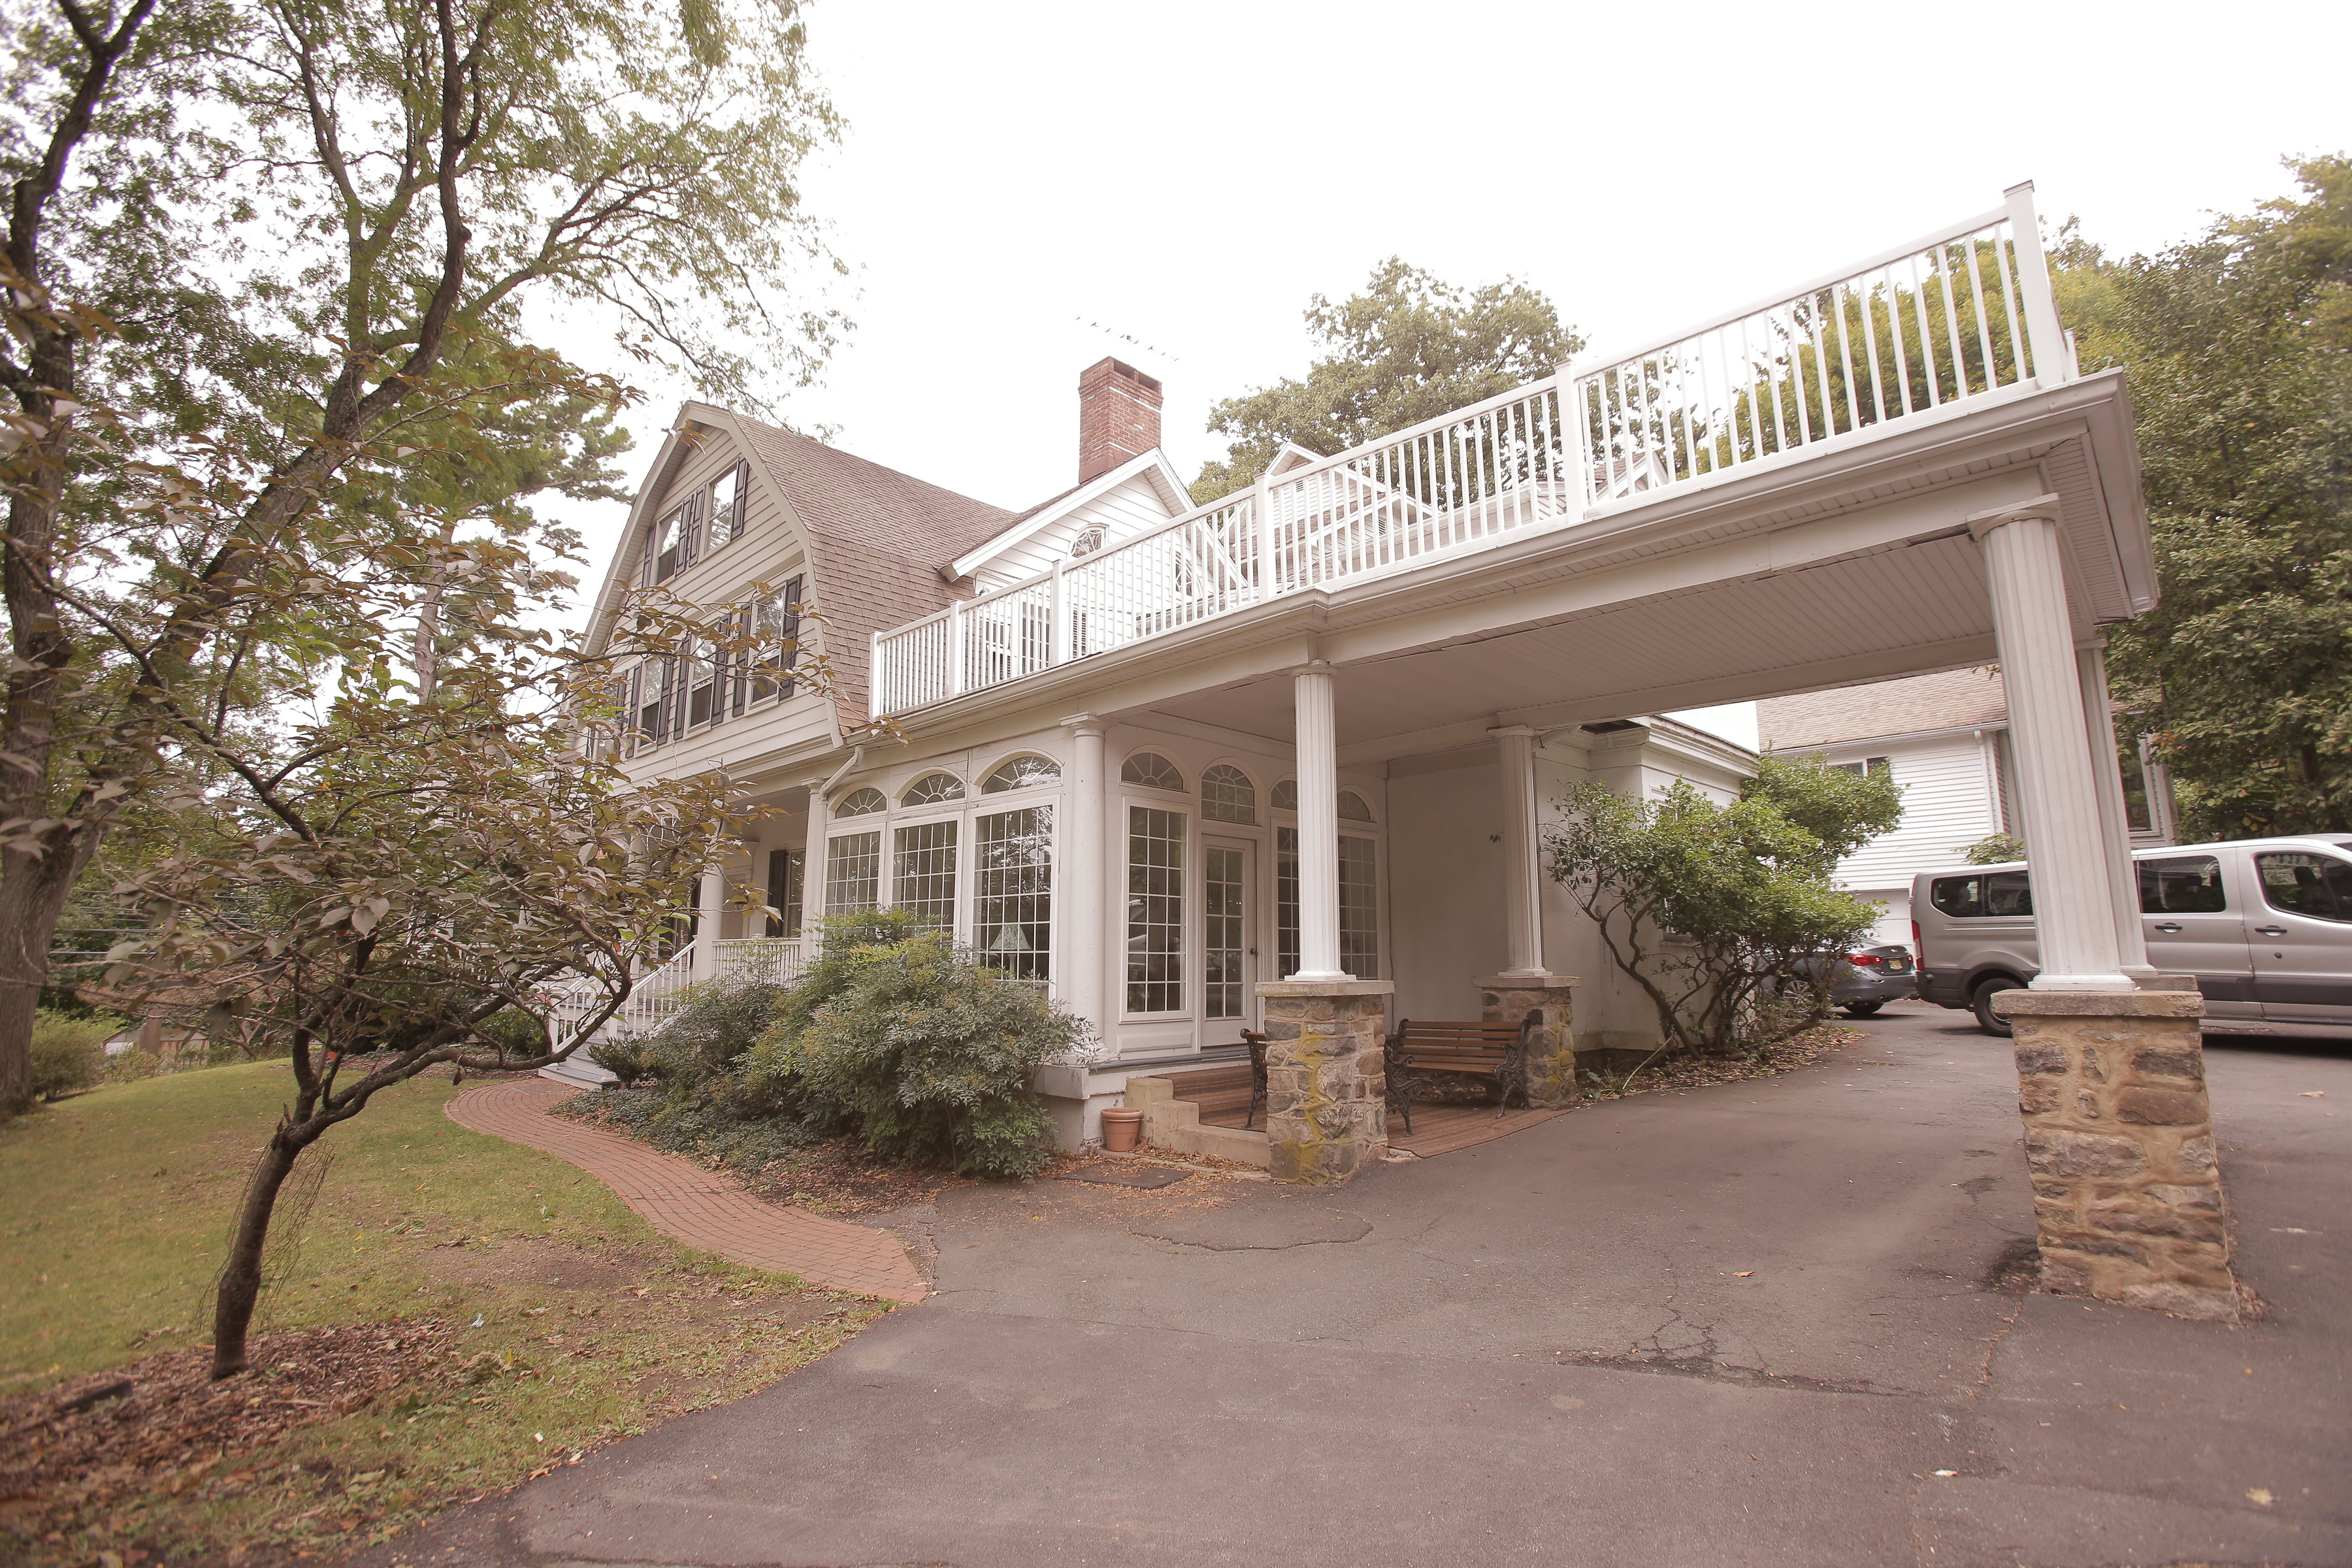 LARGE BALCONY OVER DRIVE WAY